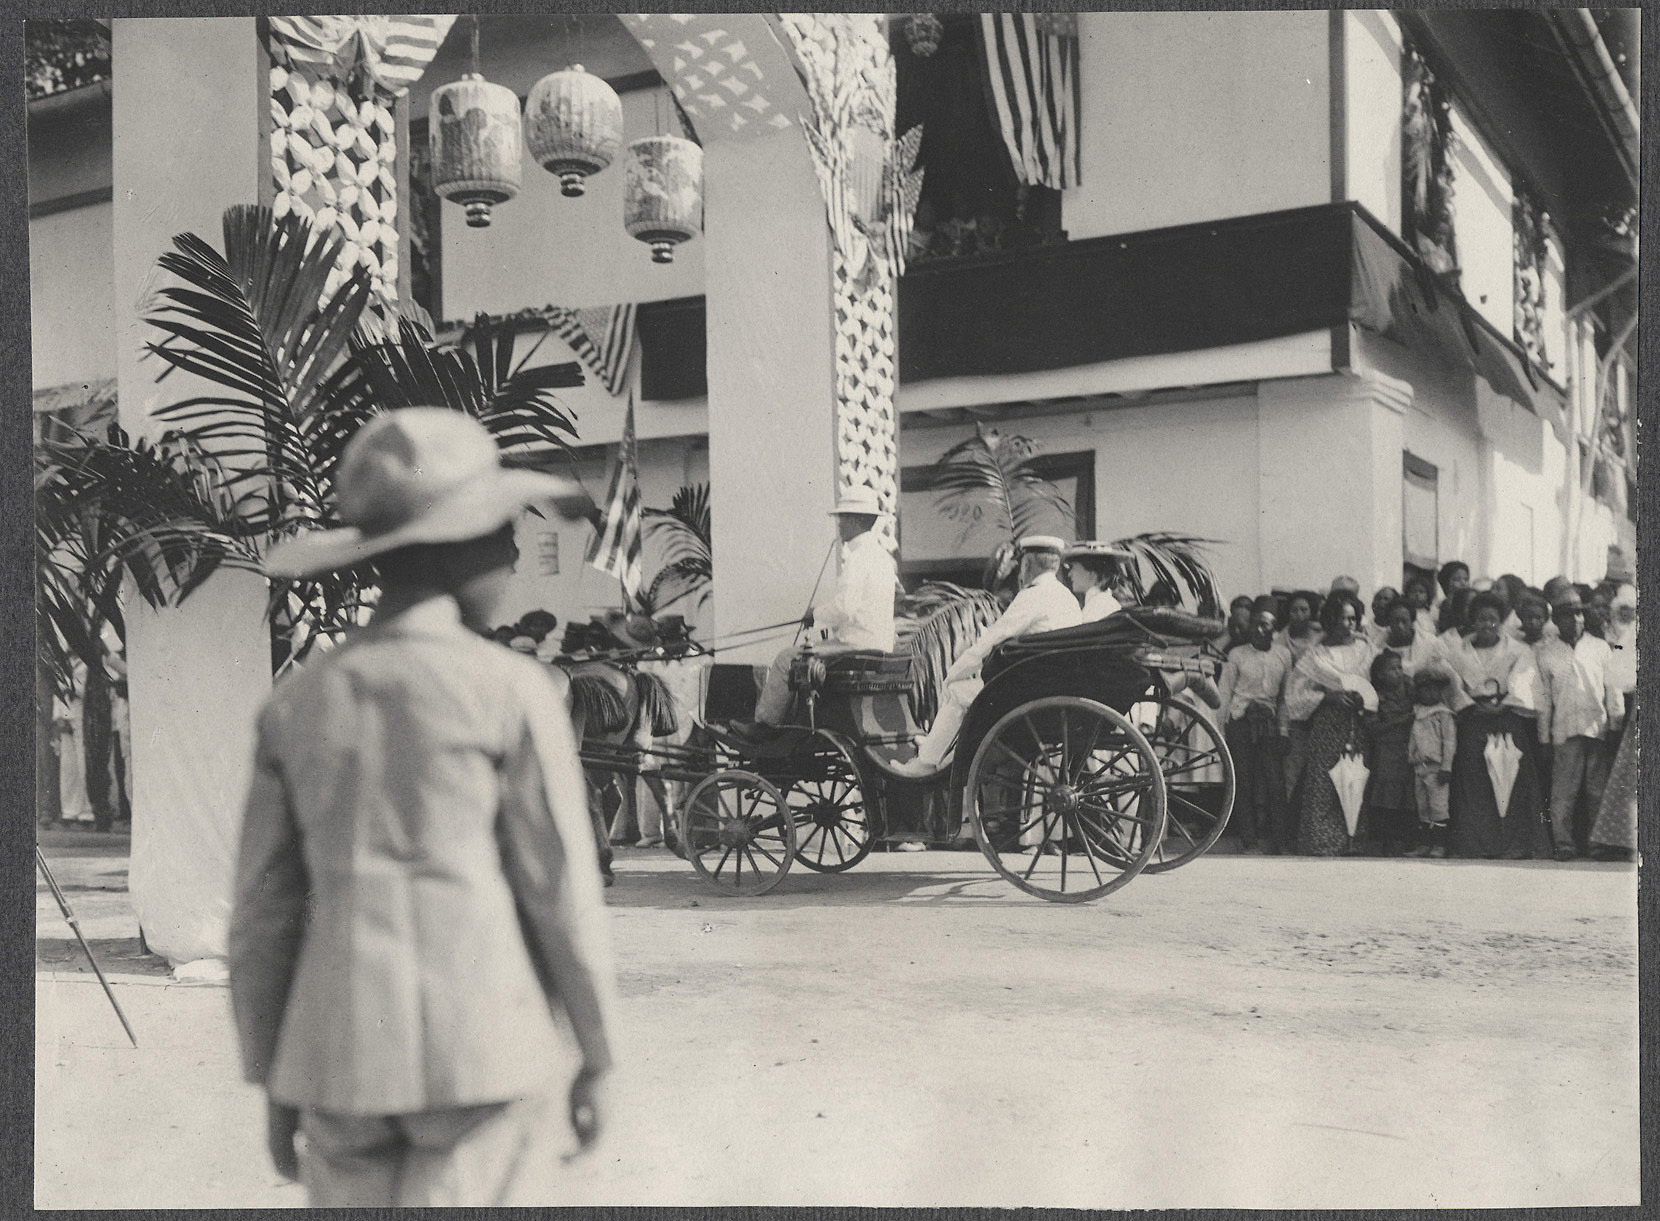 Alice Roosevelt in a carriage passing through a decorative gate, likely in Manila